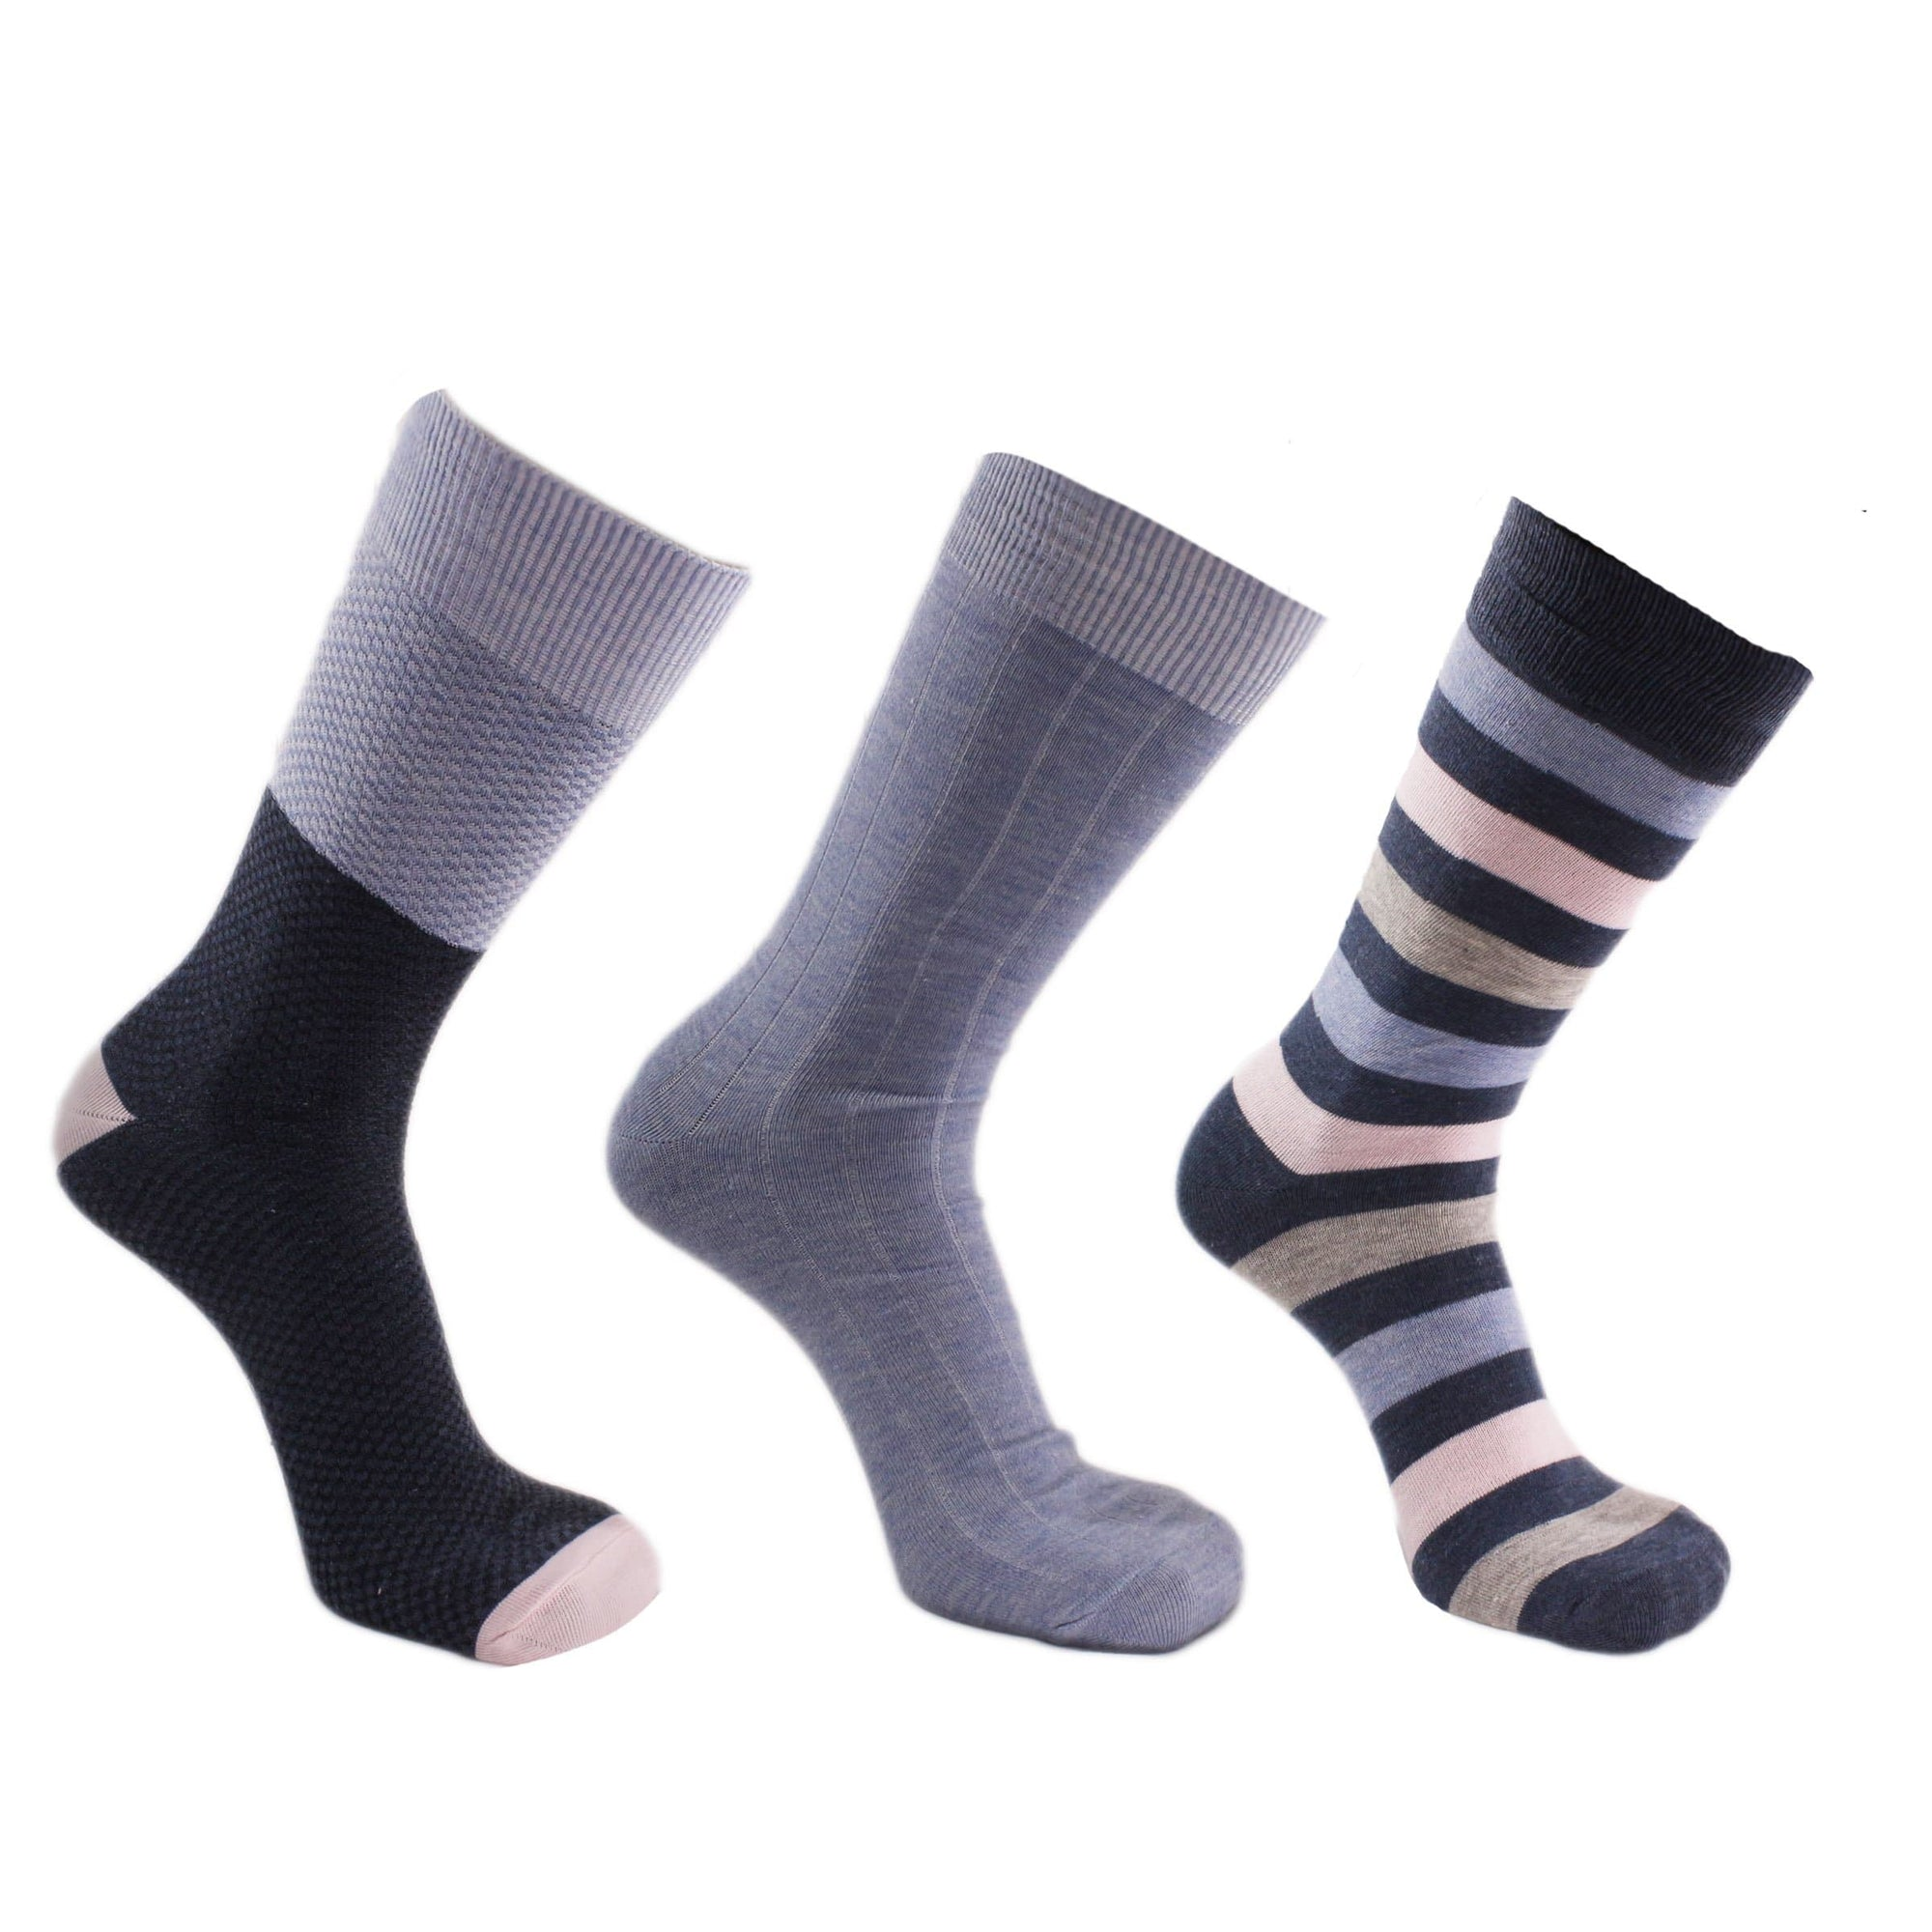 Waffle Texture 3 Pack Crew Socks Blue / Pink / Grey